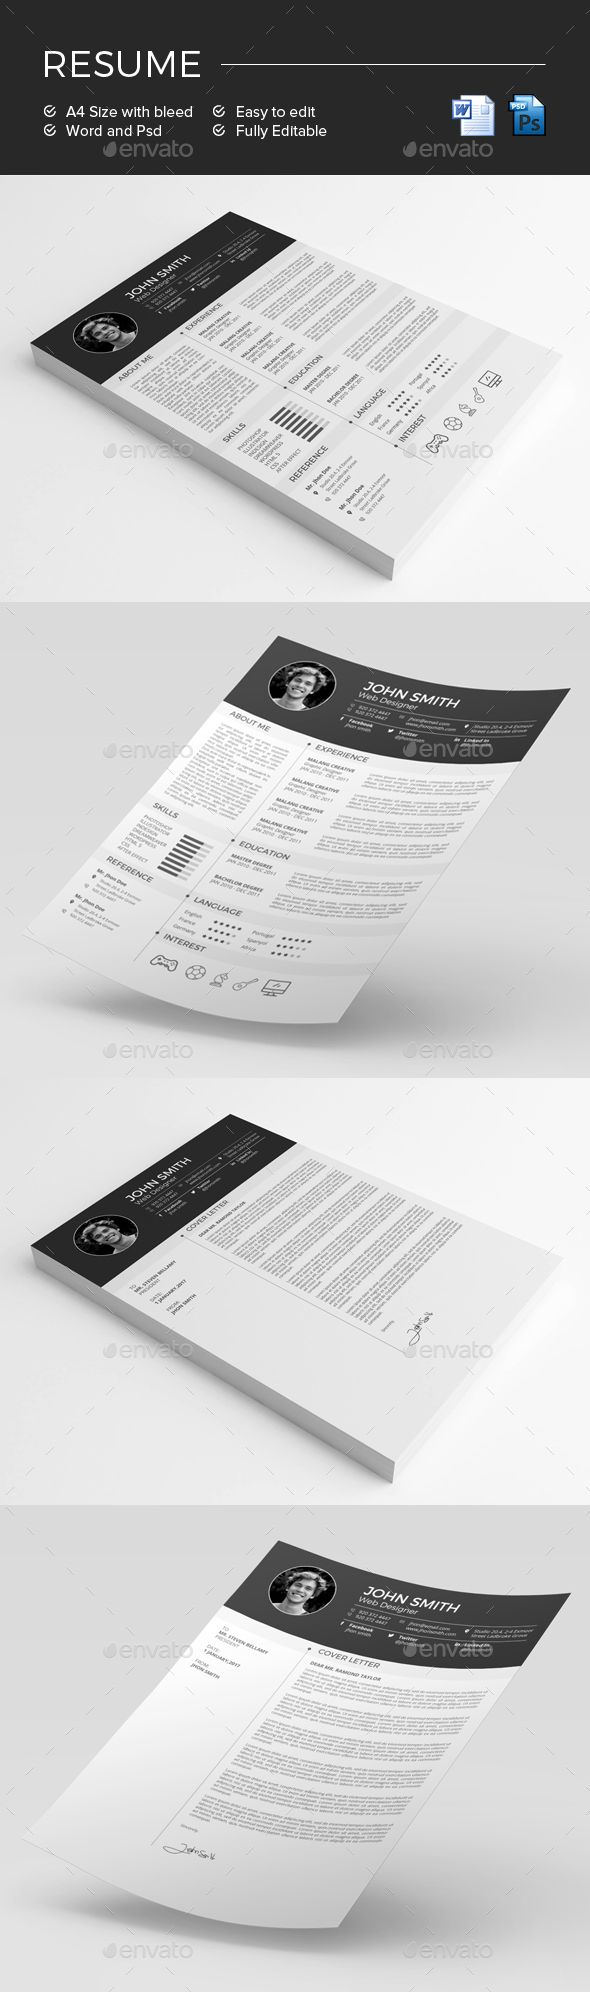 Resume Template Psd Ms Word  Resume Templates